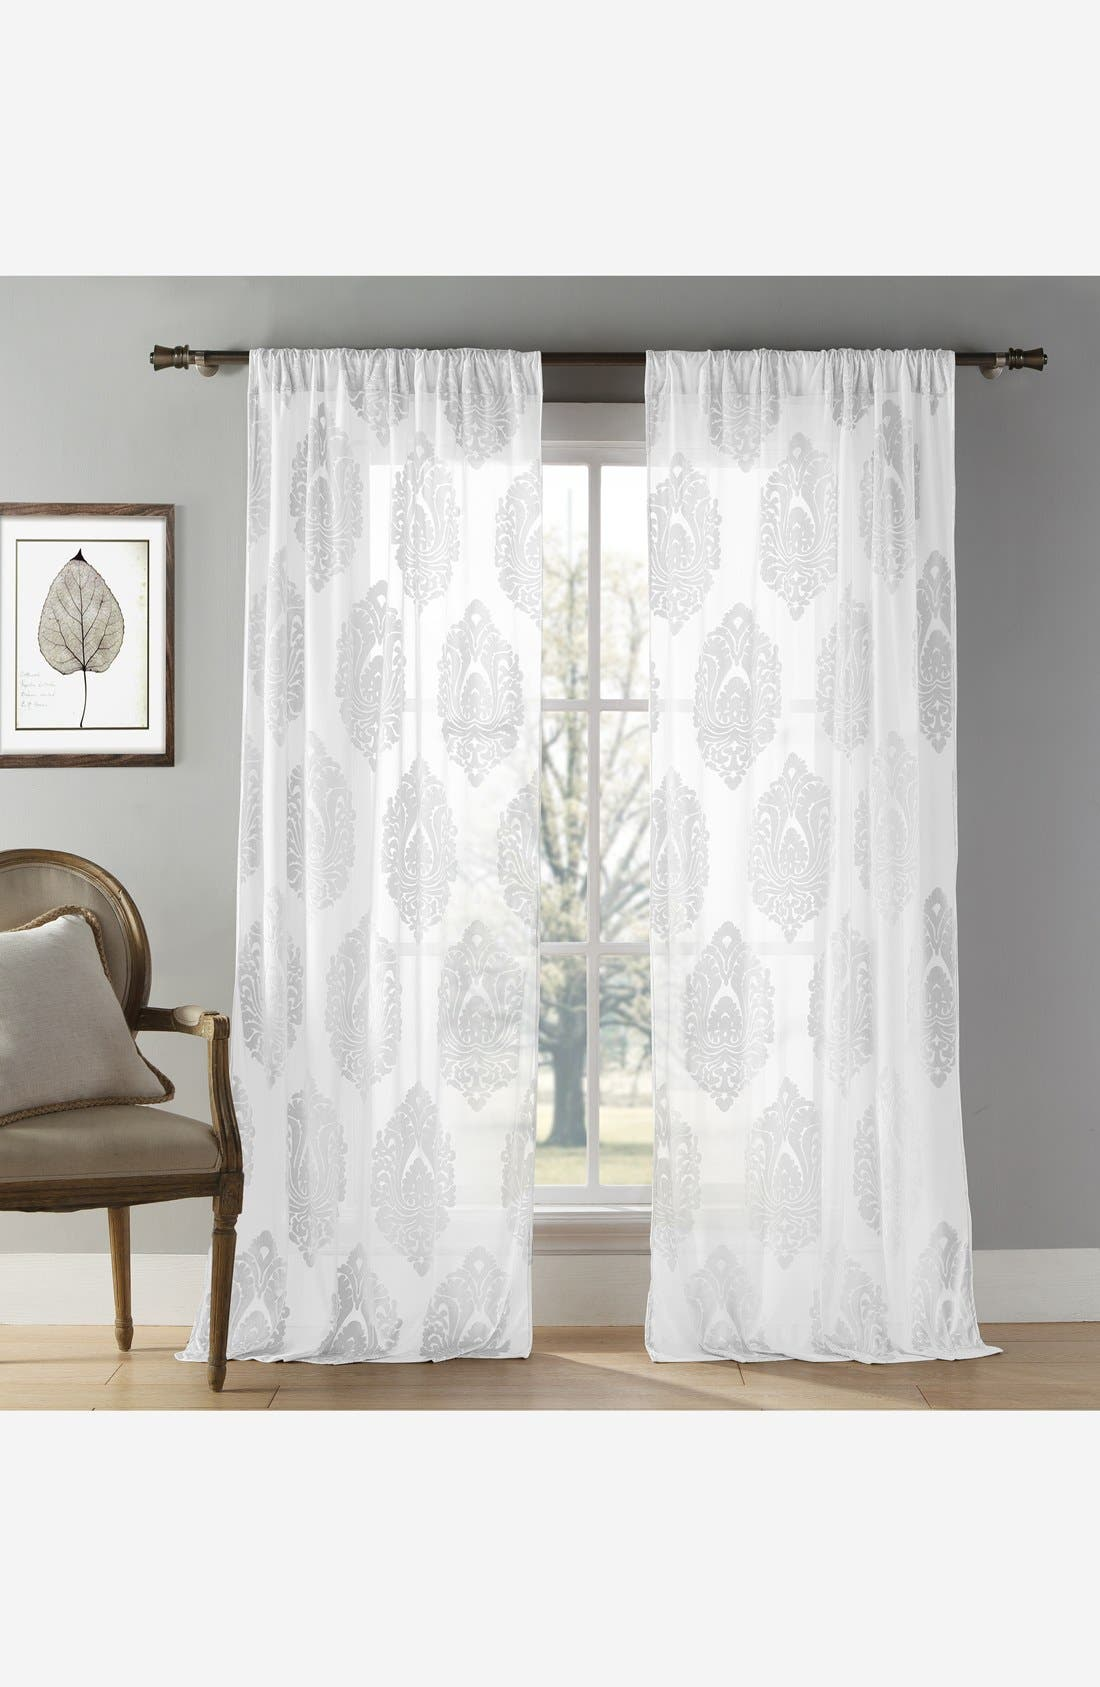 Alternate Image 1 Selected - Duck River Textile 'Sophie' Damask Velvet Burnout Window Panels (Set of 2)